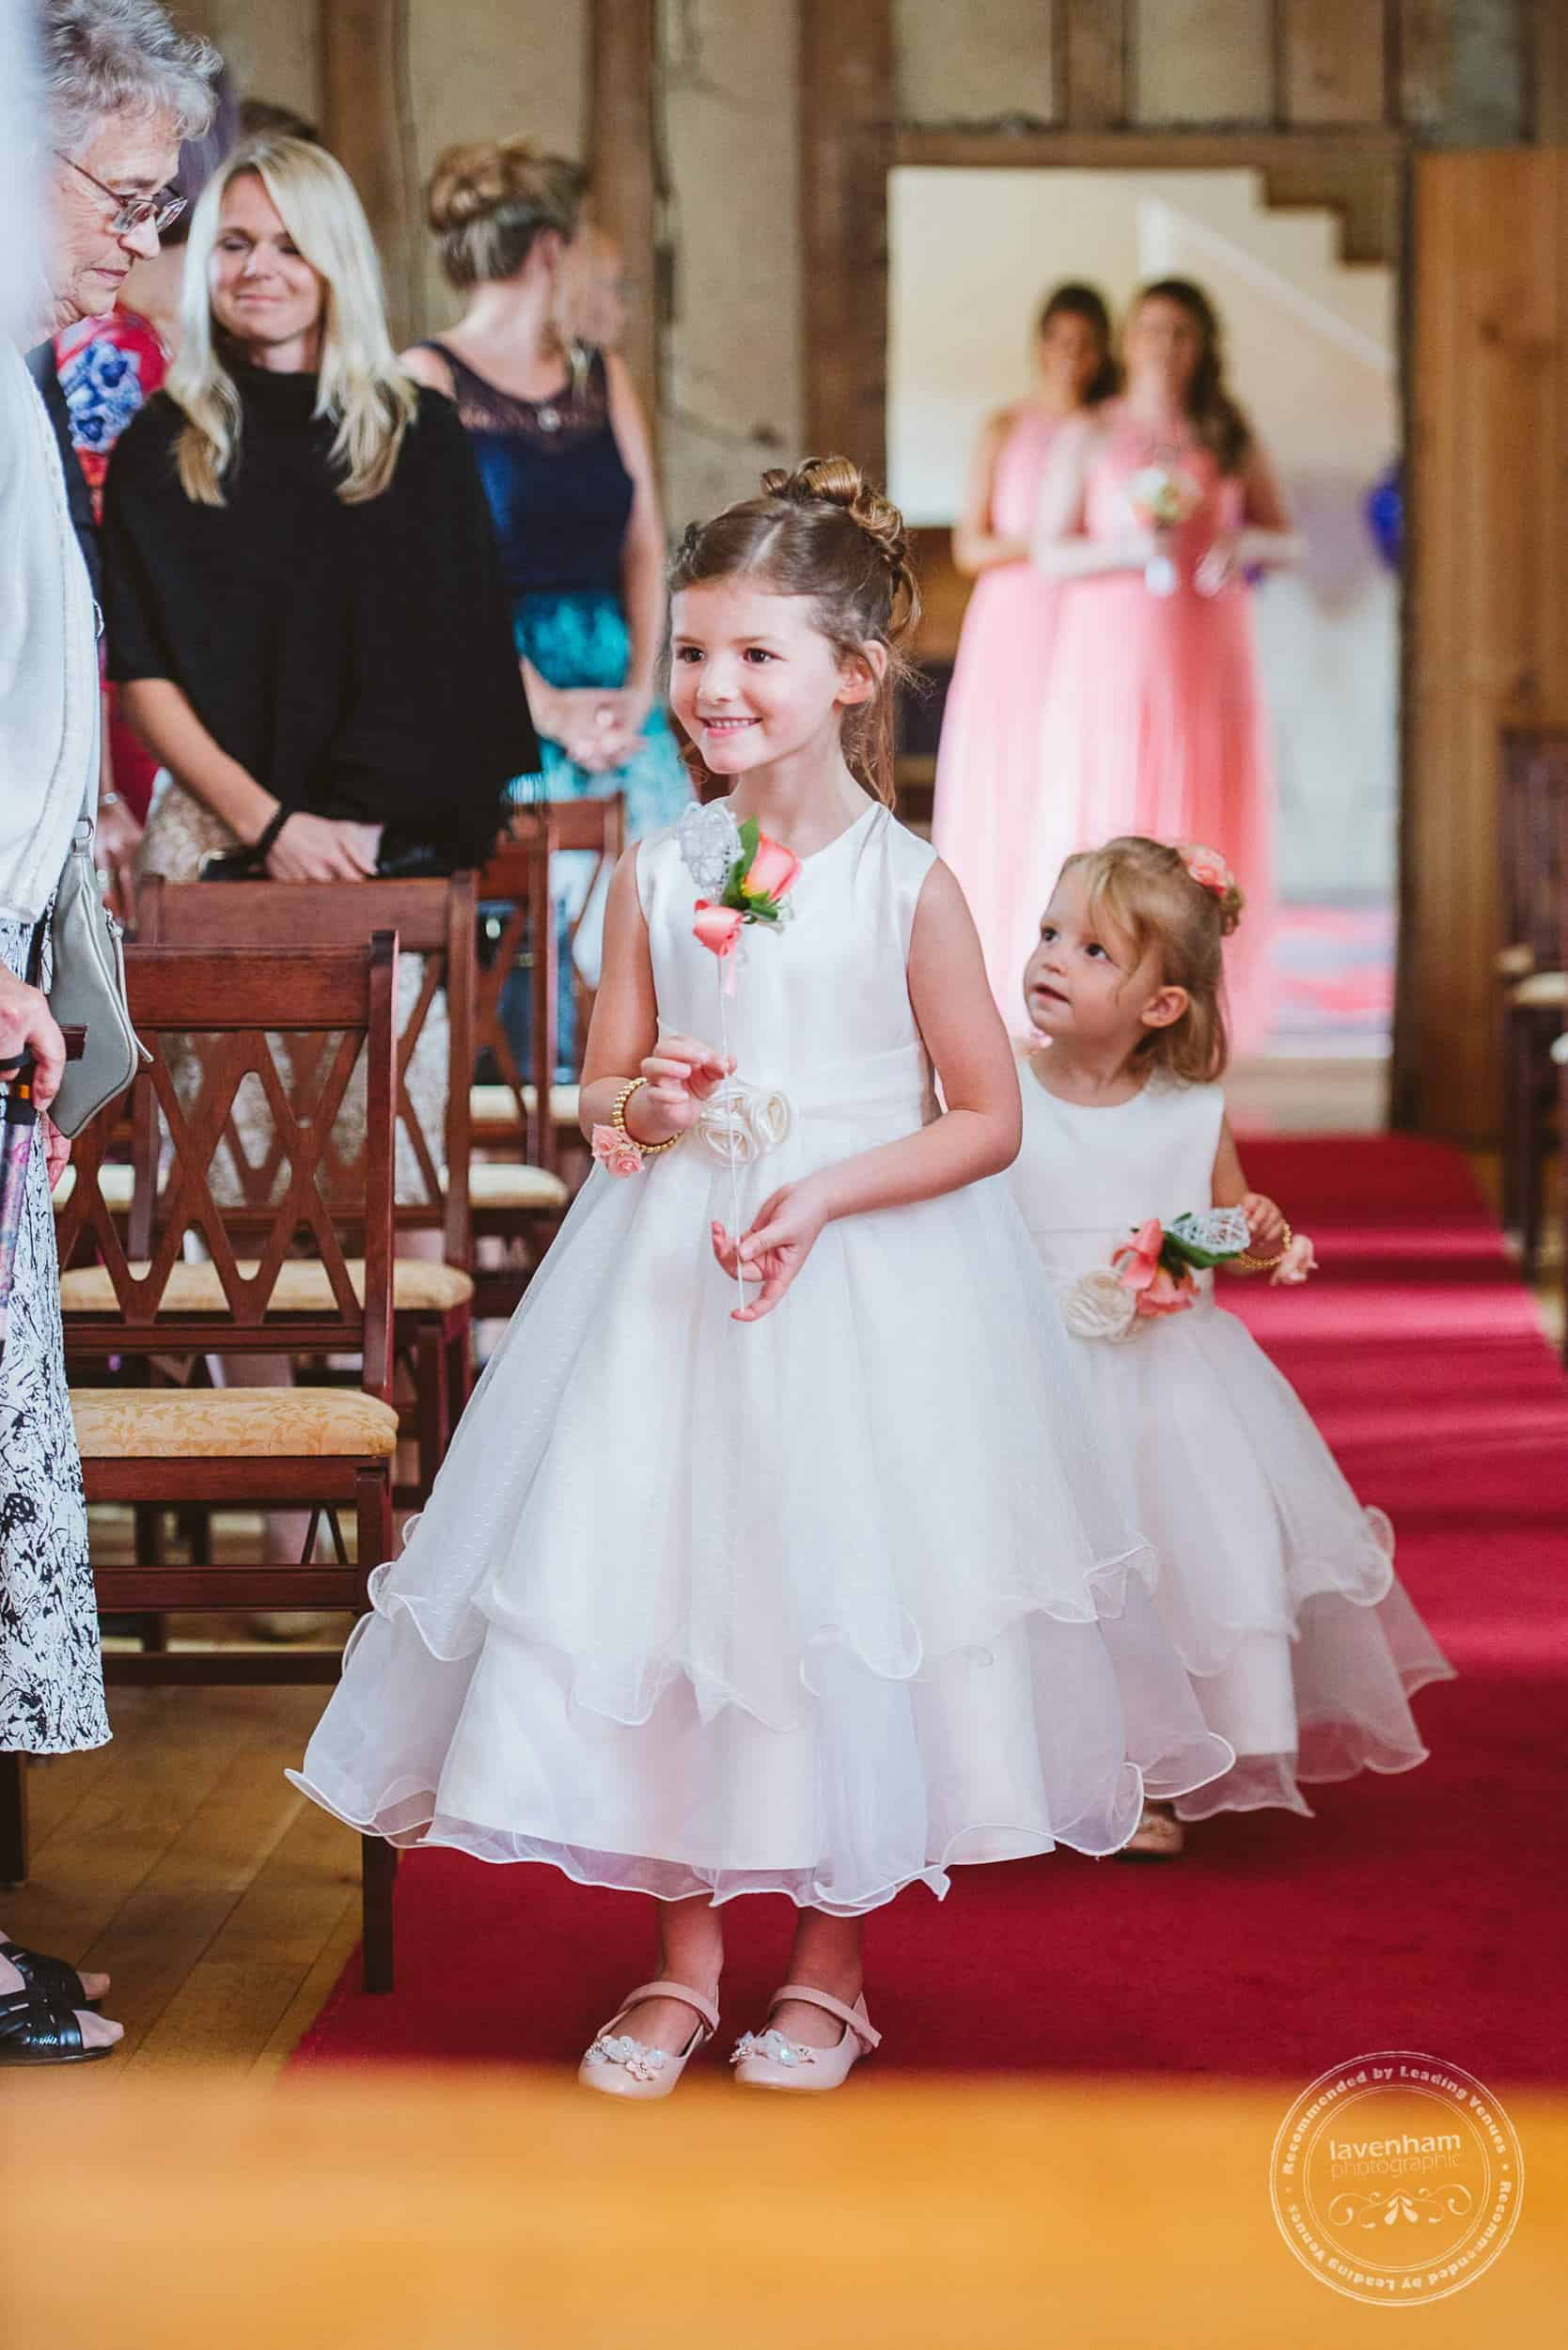 140717 Layer Marney Wedding Photography by Lavenham Photographic 037